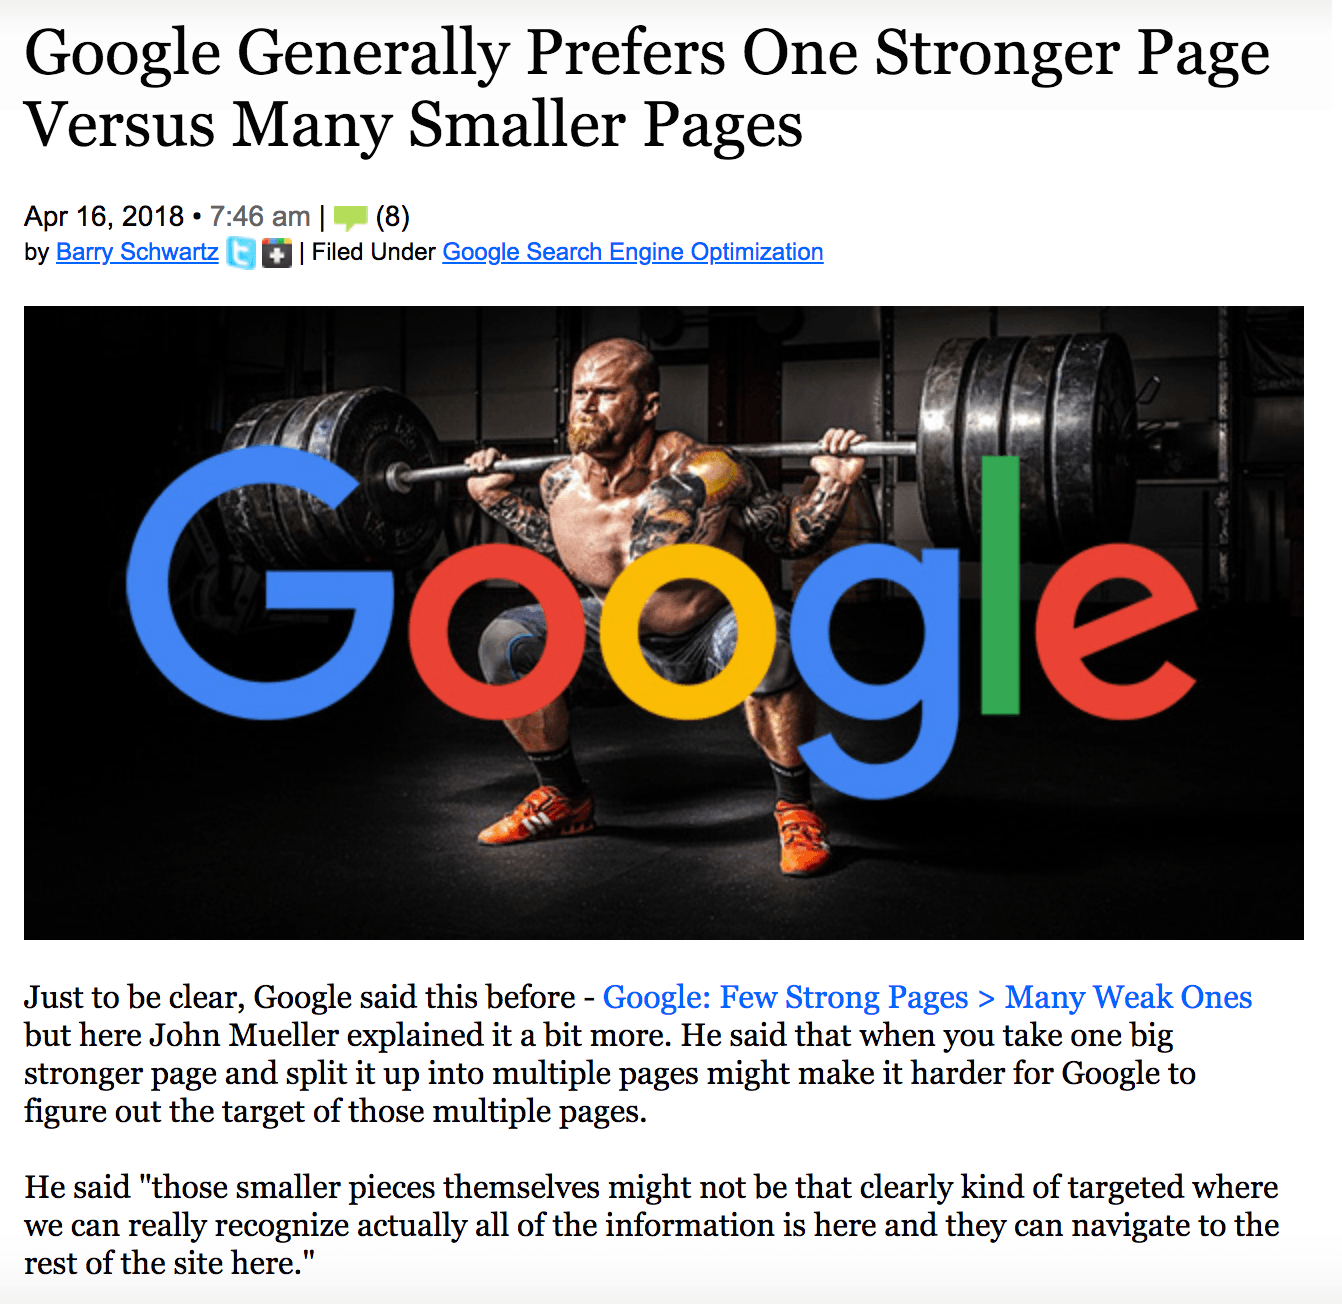 Google likes powerful pages